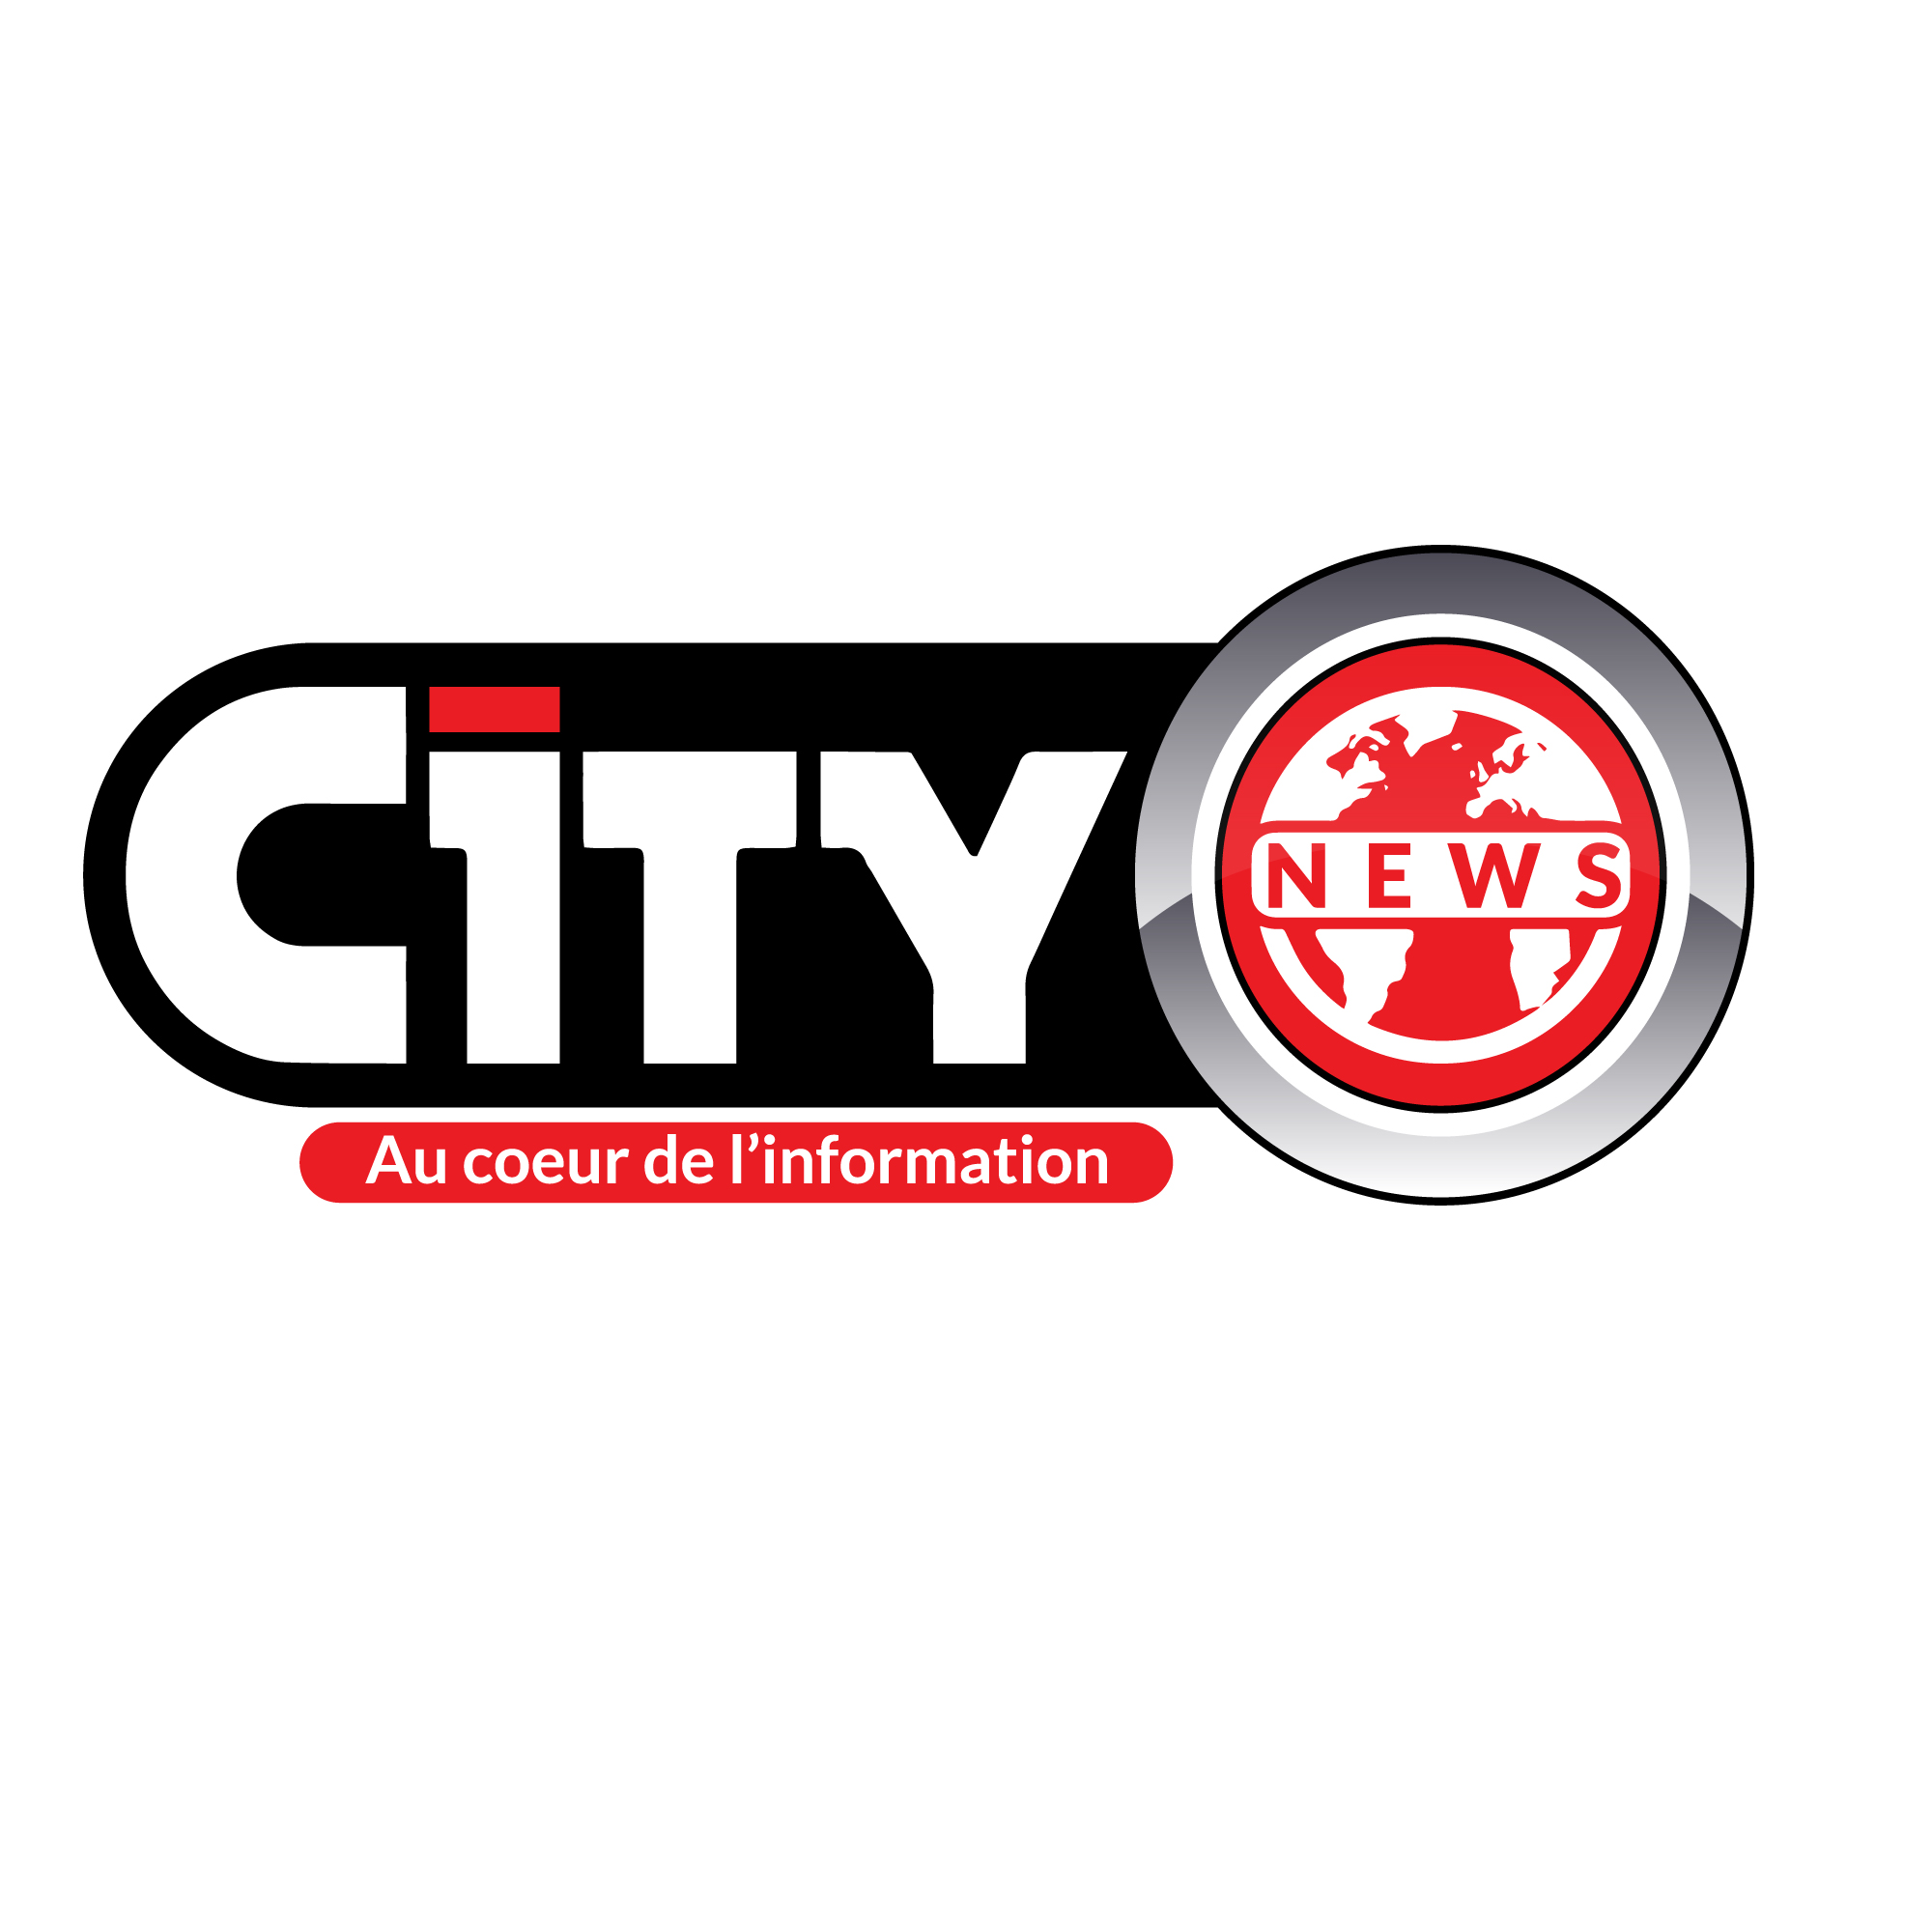 City News Senegal